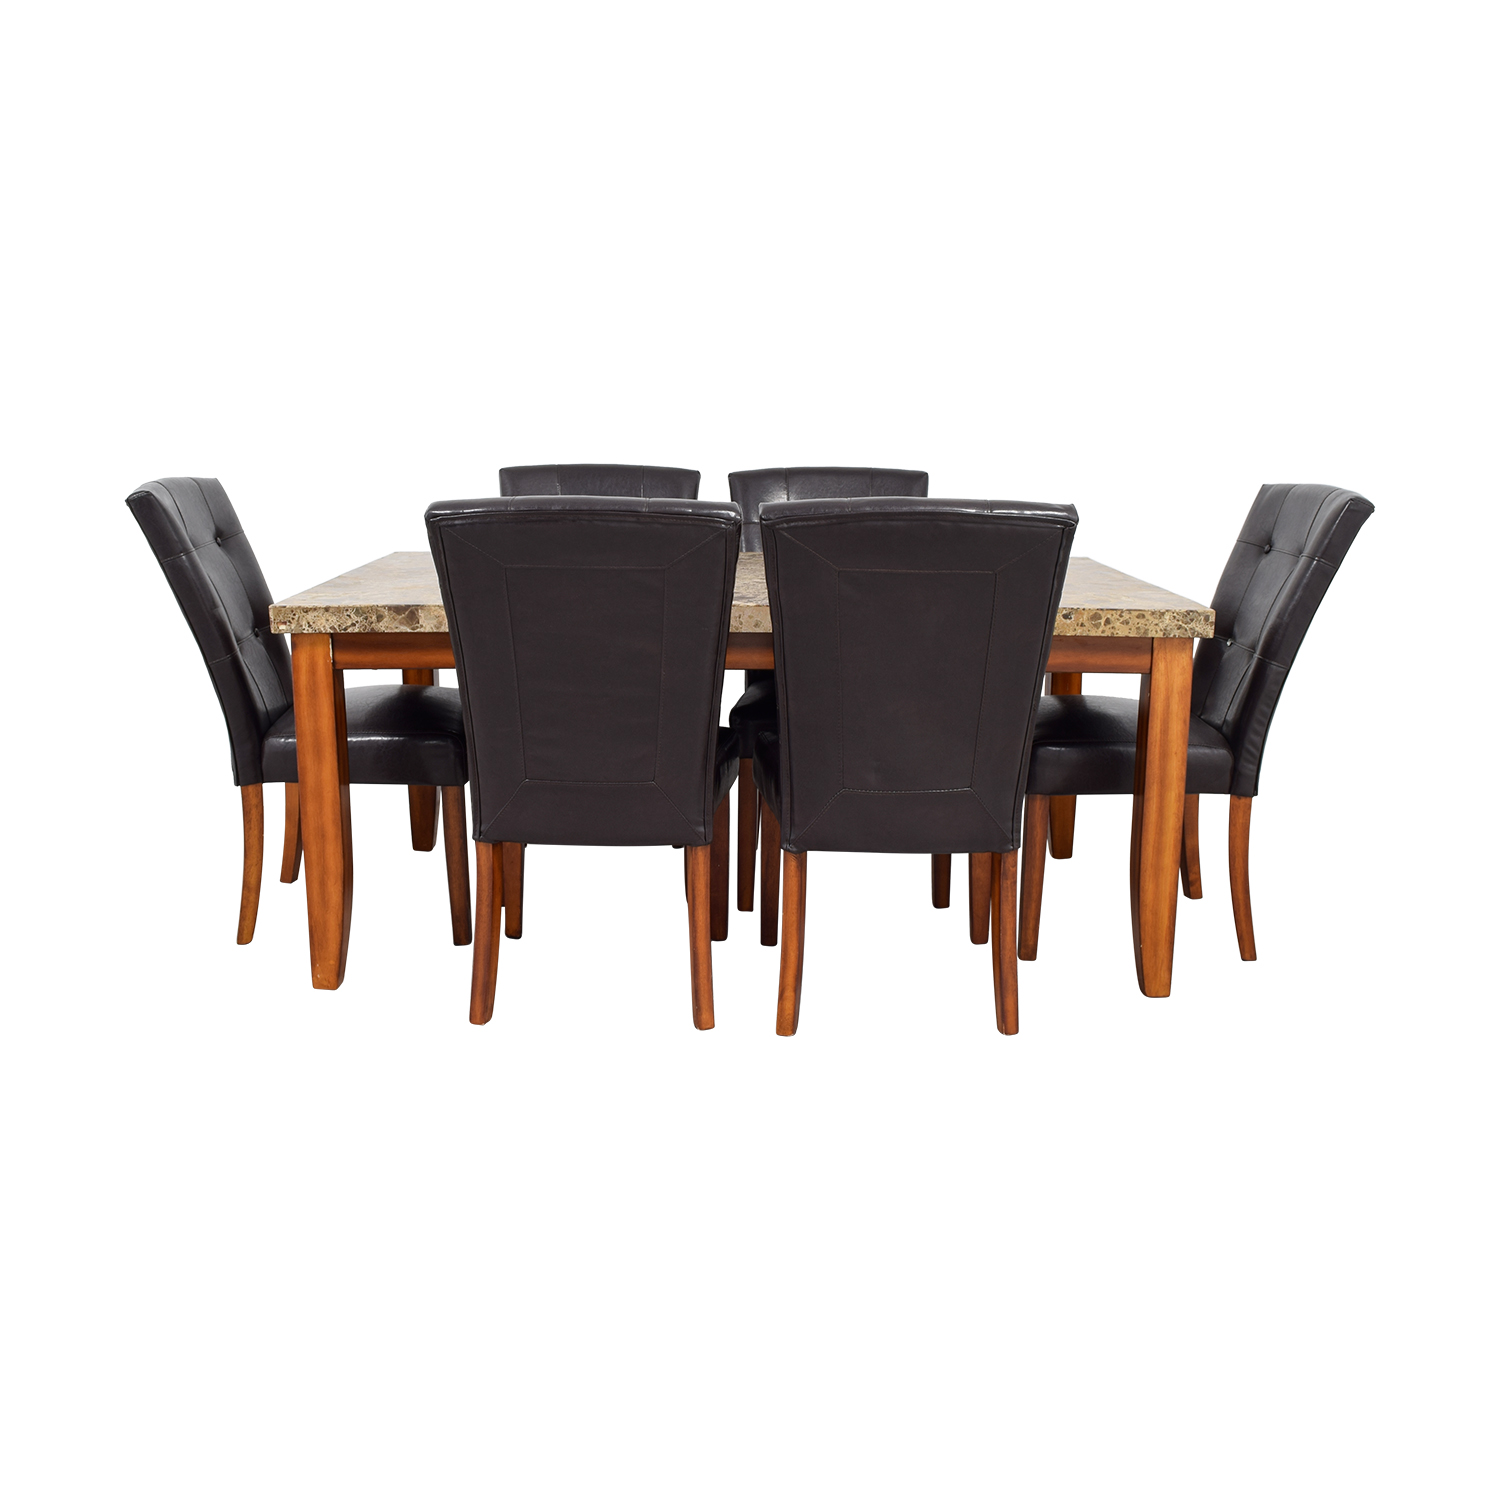 Bobs Furniture Bobs Furniture Faux Marble Dining Set for sale